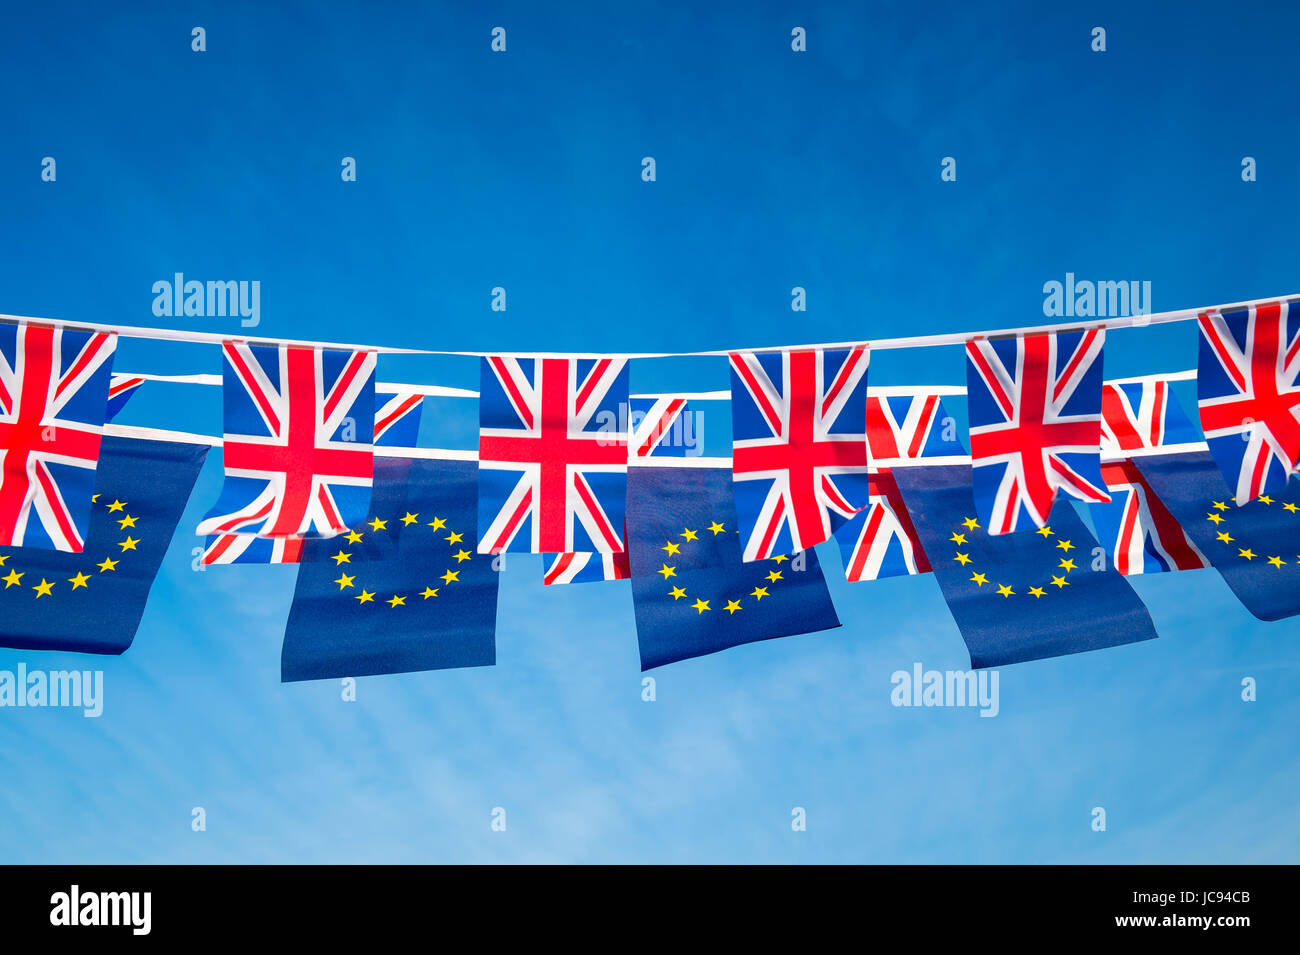 European Union and British Union Jack flag bunting flying in bright blue sky in a statement of the Brexit EU negotiations - Stock Image